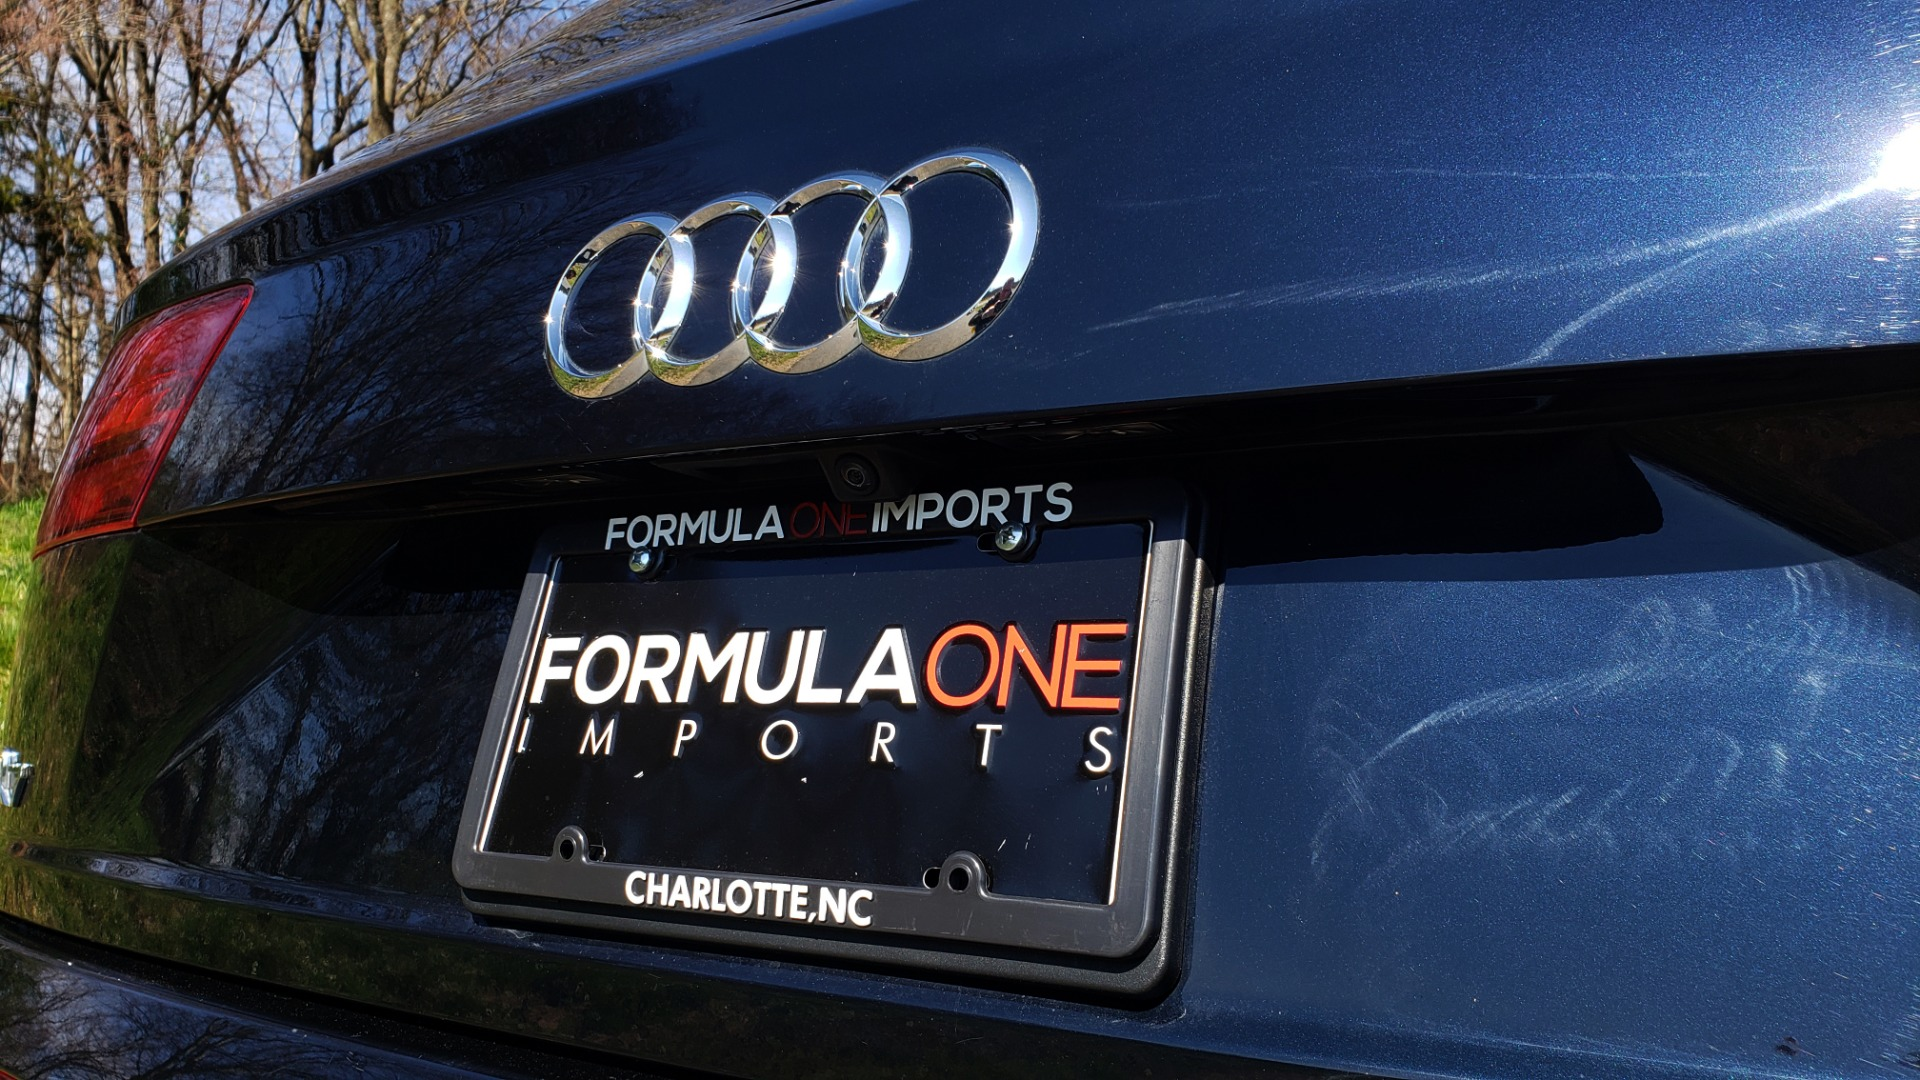 Used 2018 Audi Q7 PRESTIGE 3.0T CLD WTHR / NAV / BOSE / HEADS-UP / REARVIEW for sale Sold at Formula Imports in Charlotte NC 28227 32